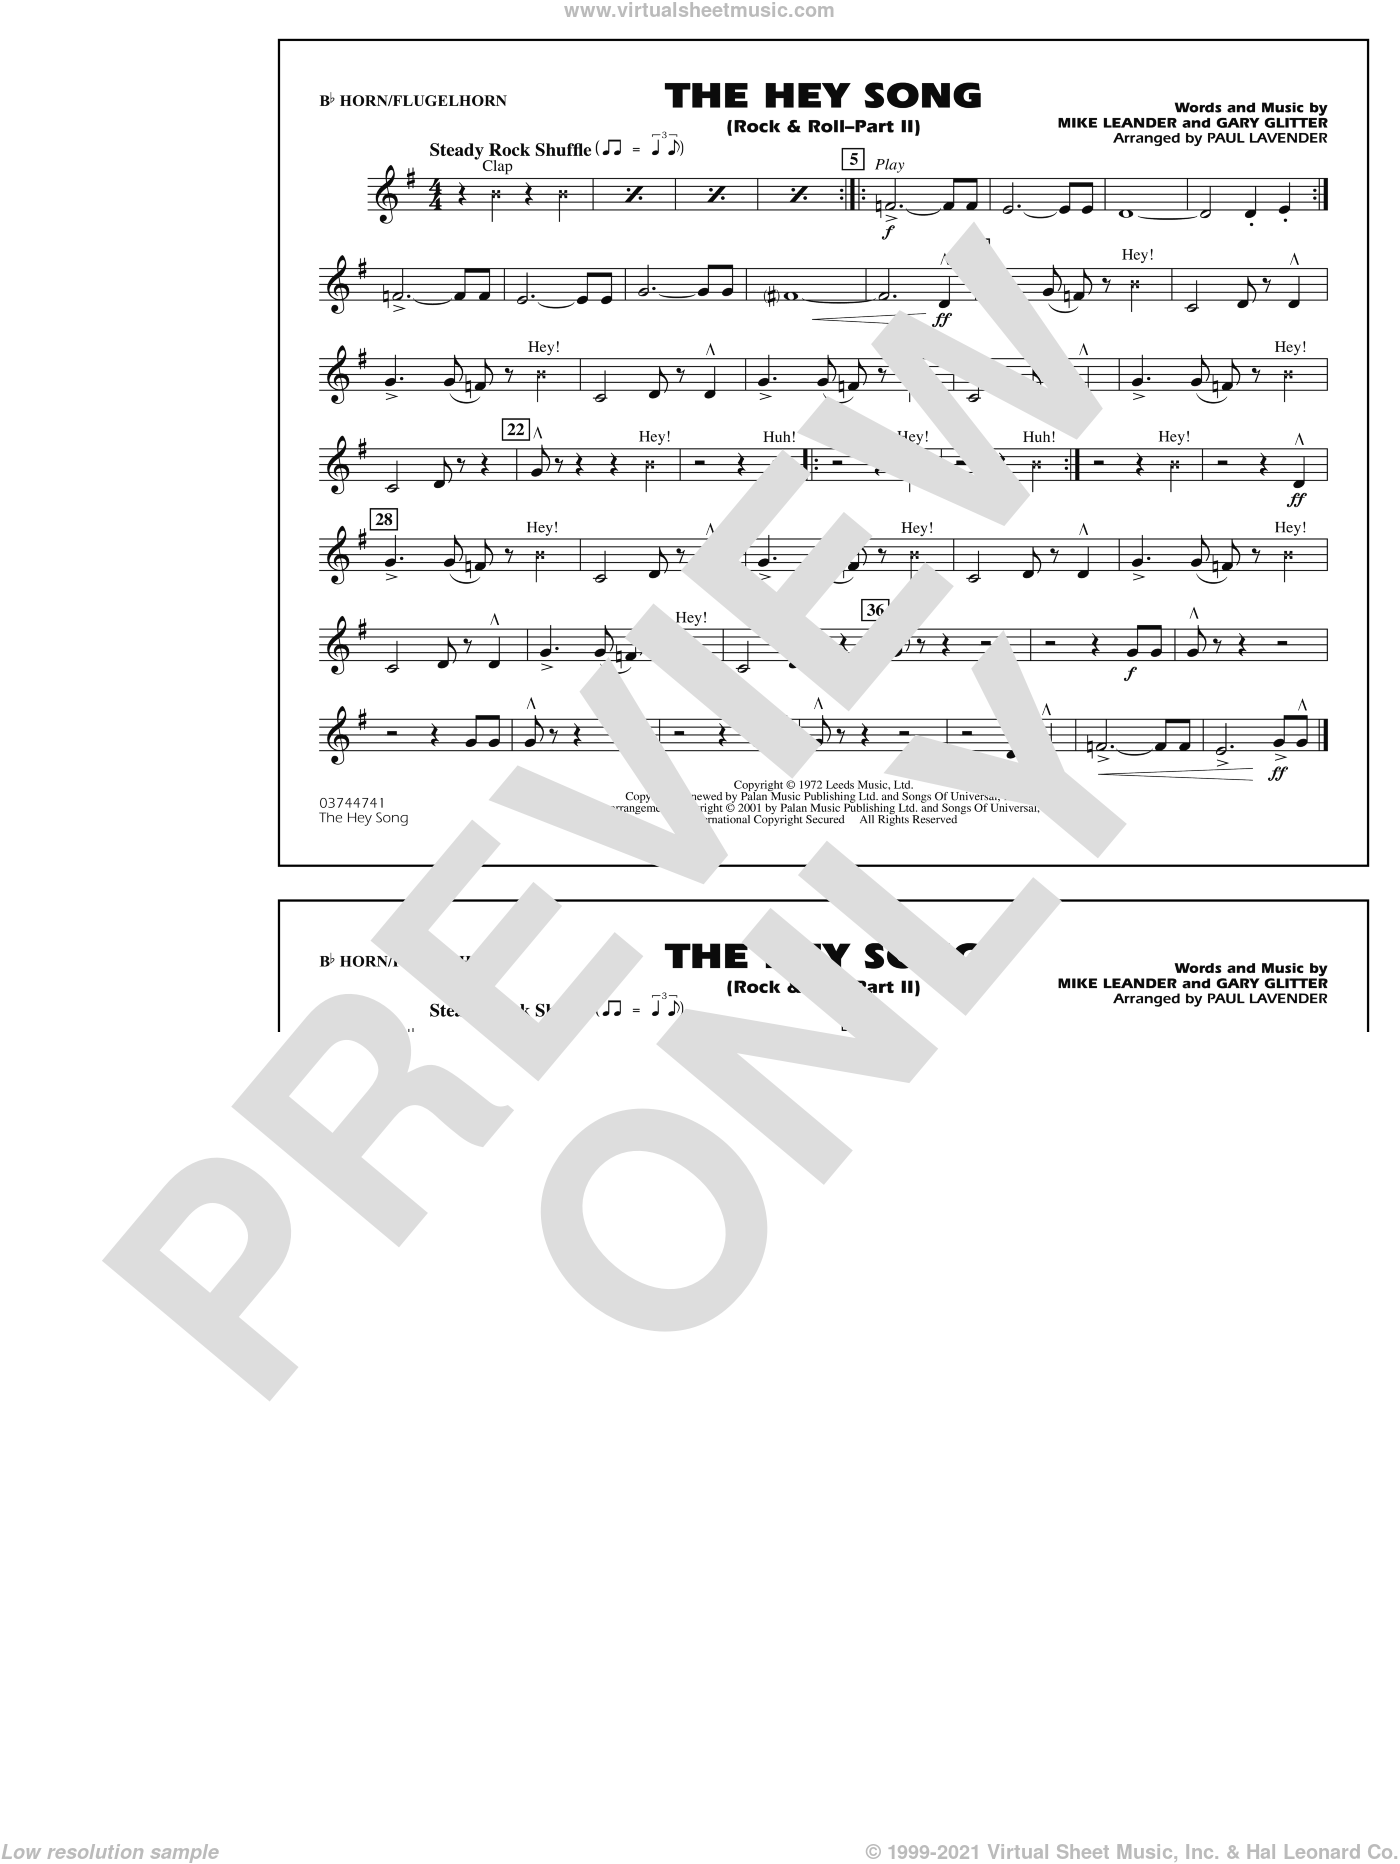 Rock and Roll, part ii (the hey song) sheet music for marching band (Bb horn/flugelhorn) by Mike Leander